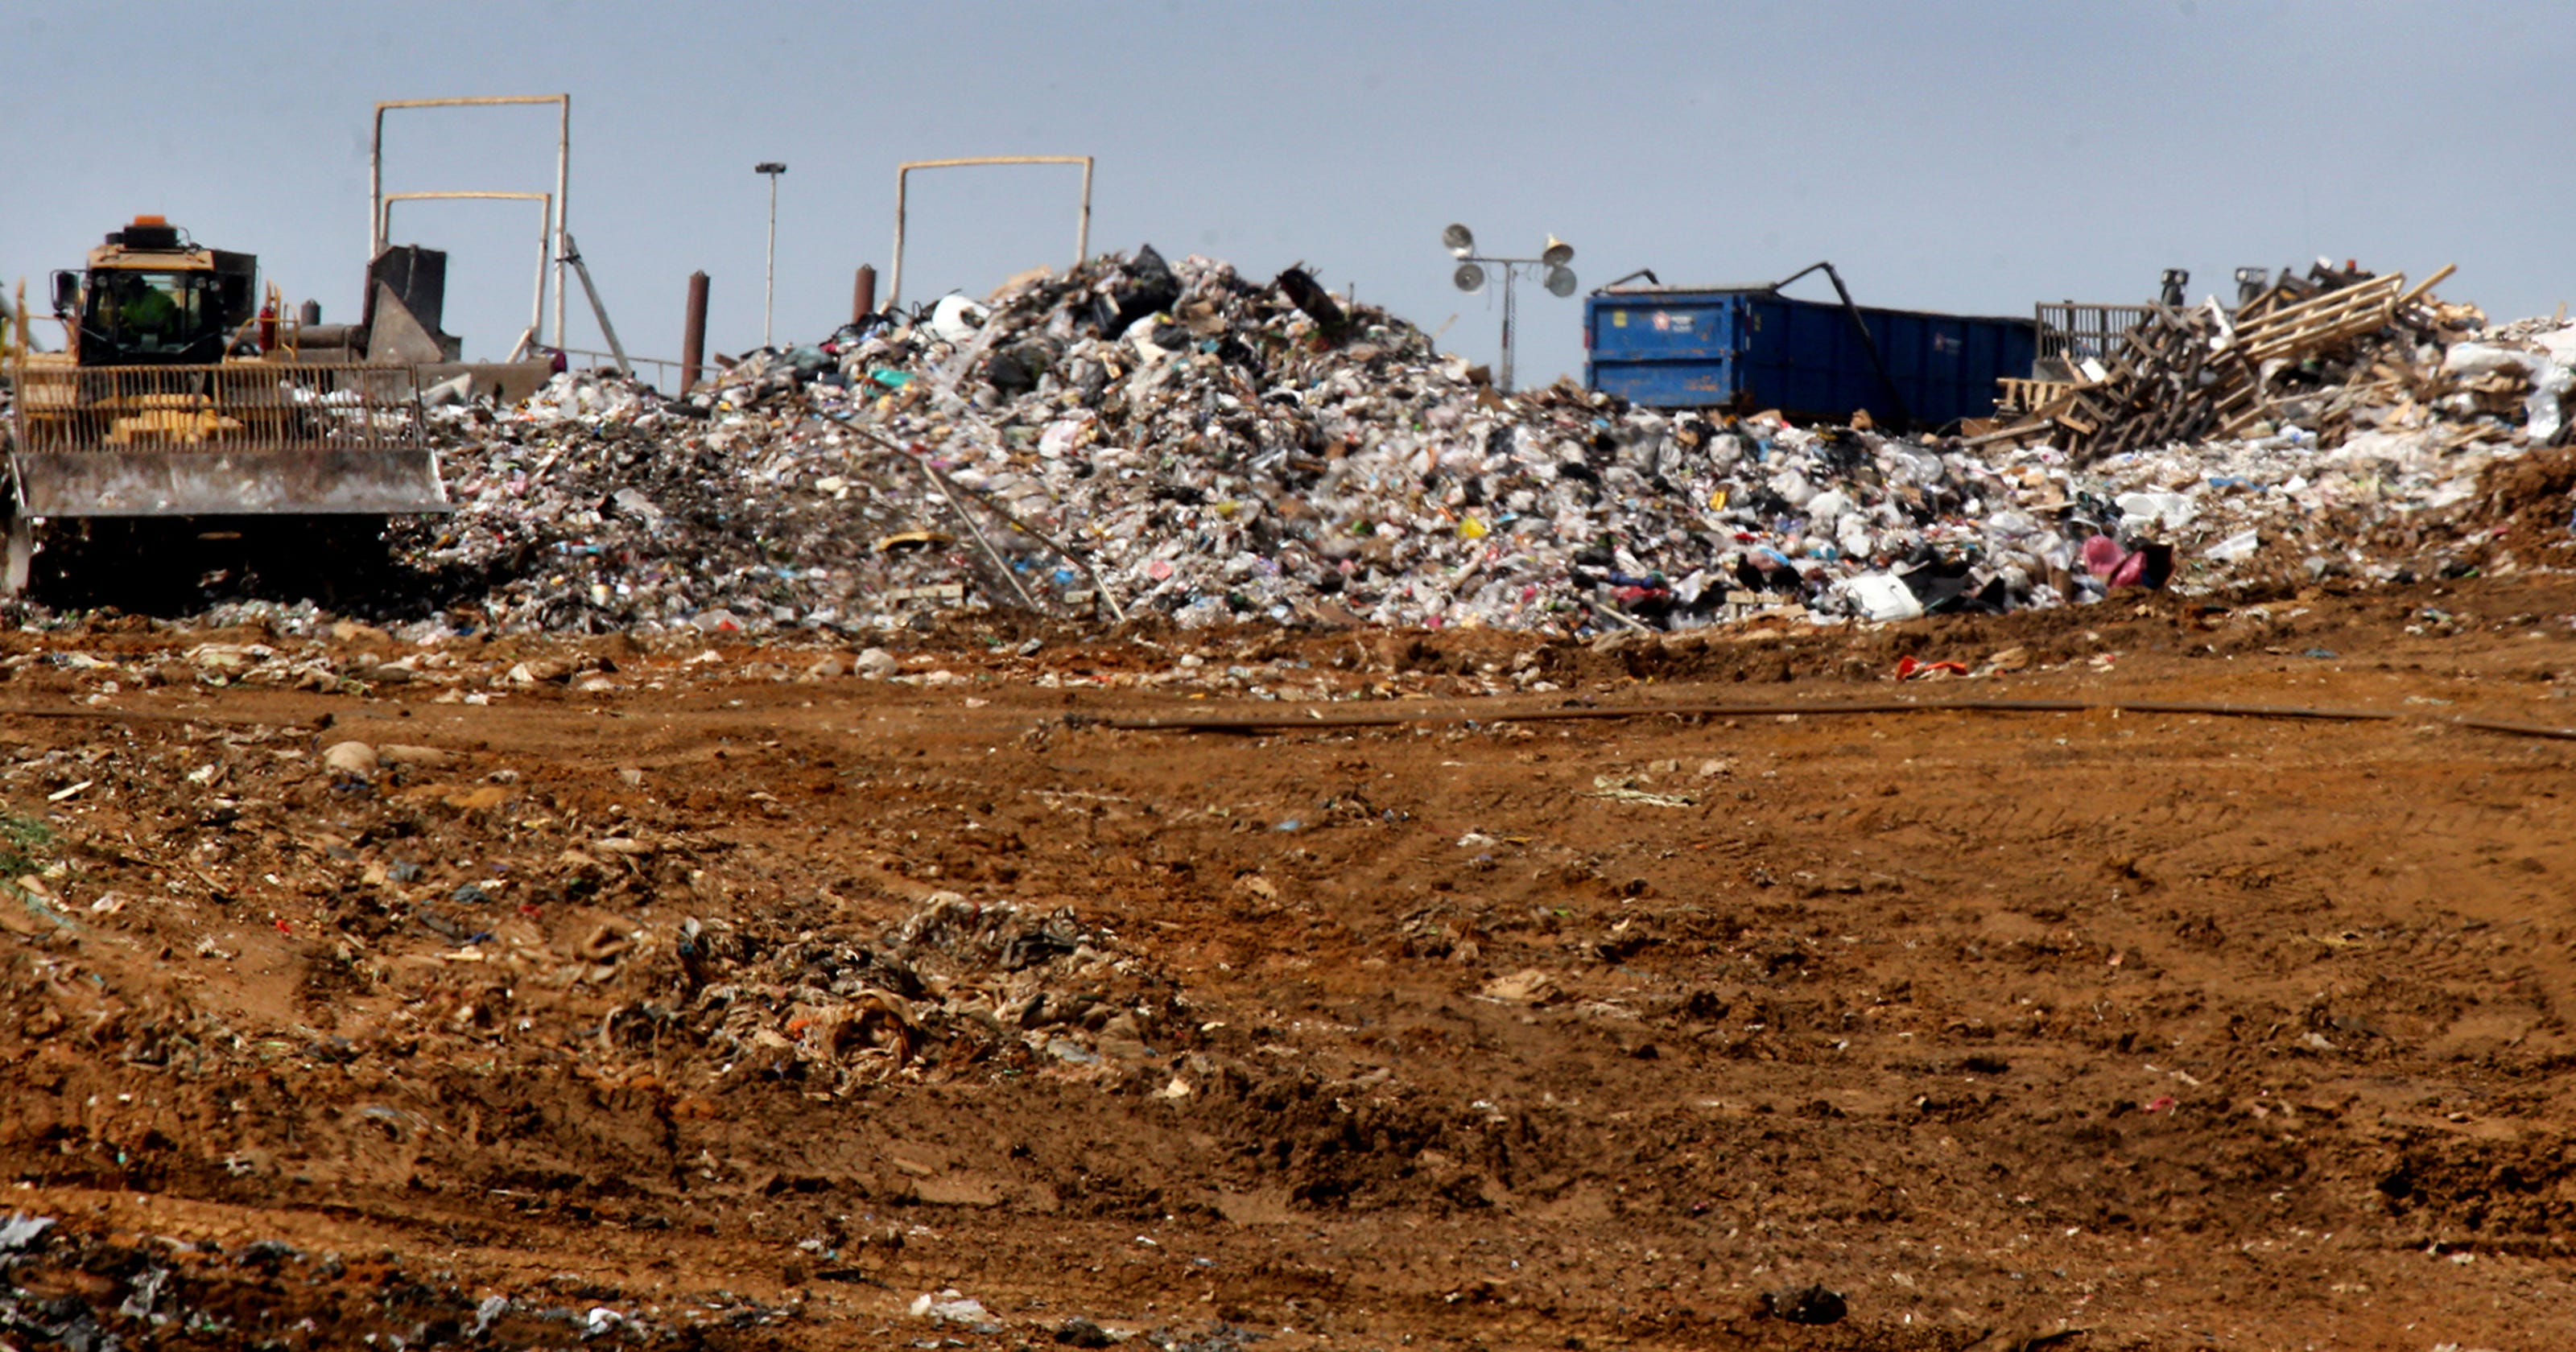 nashville adopts new policy for future landfill approvals